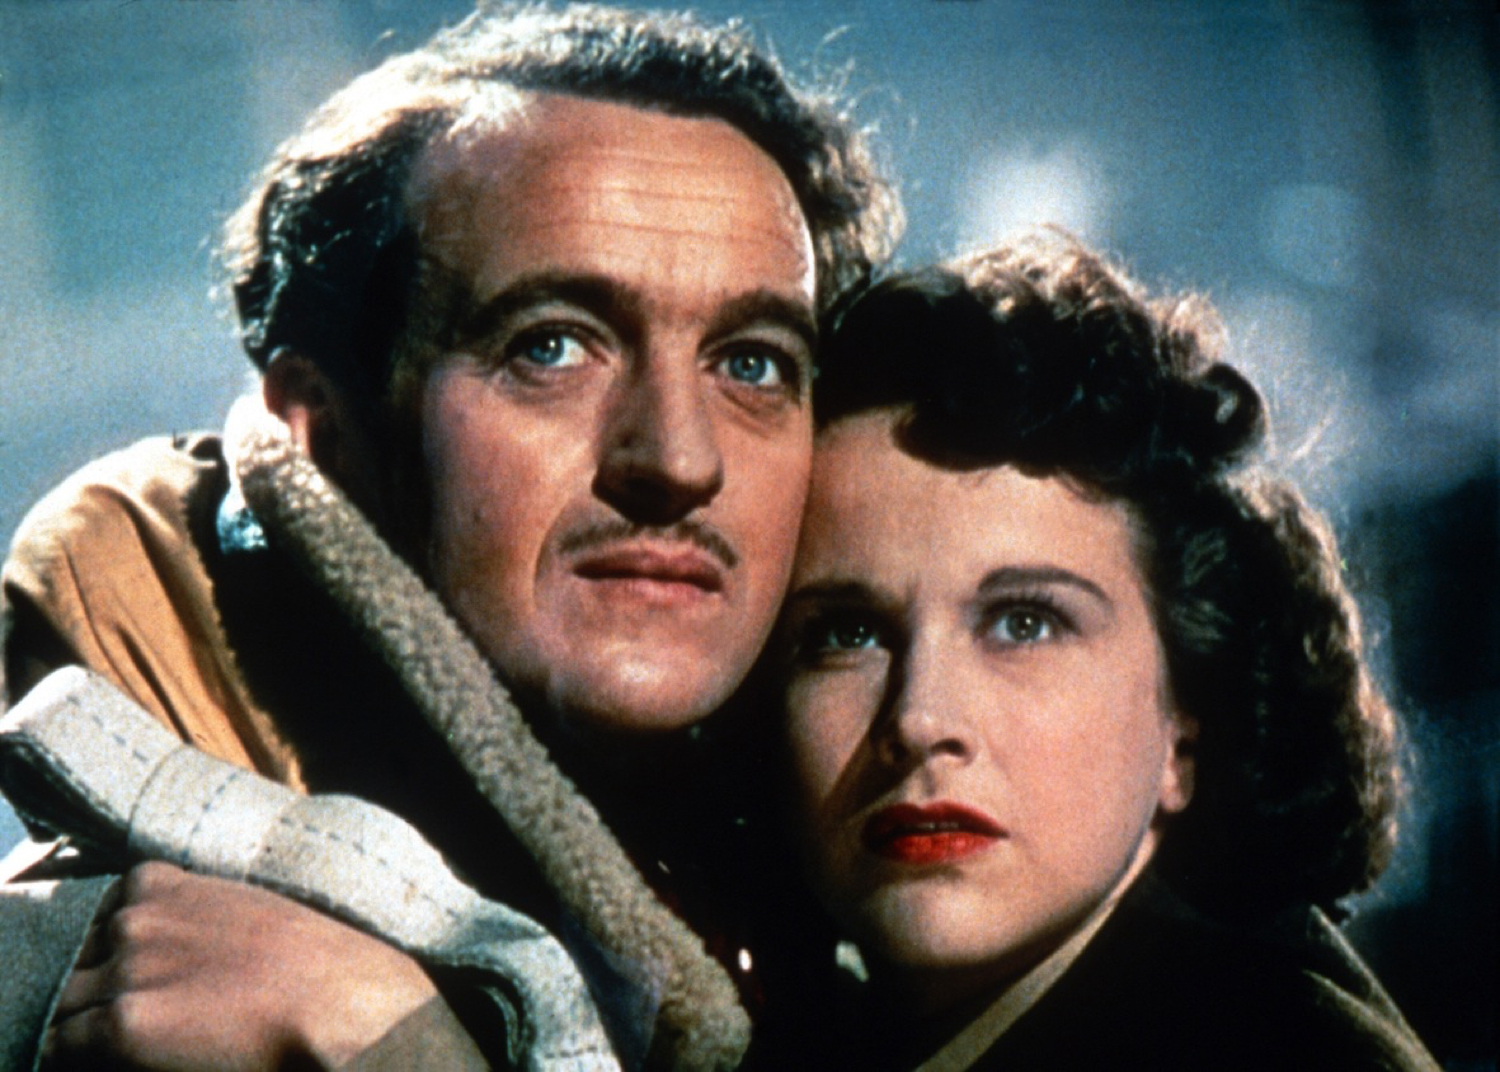 AMatterOfLife, Michael Powell-pressburger, 1946